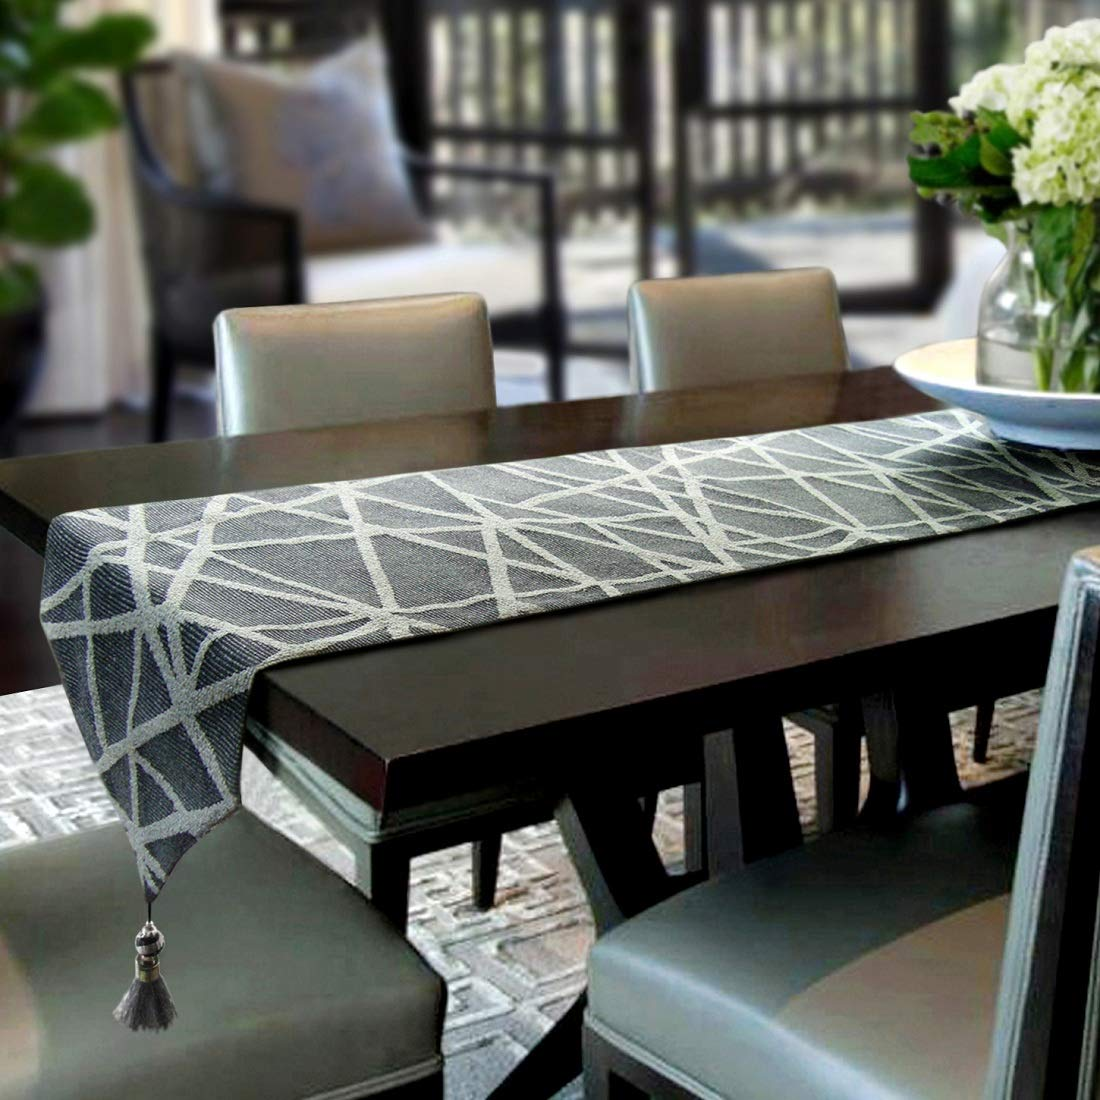 Artbisons Table Runner Grey Geometry 95x13 Thickly Modern